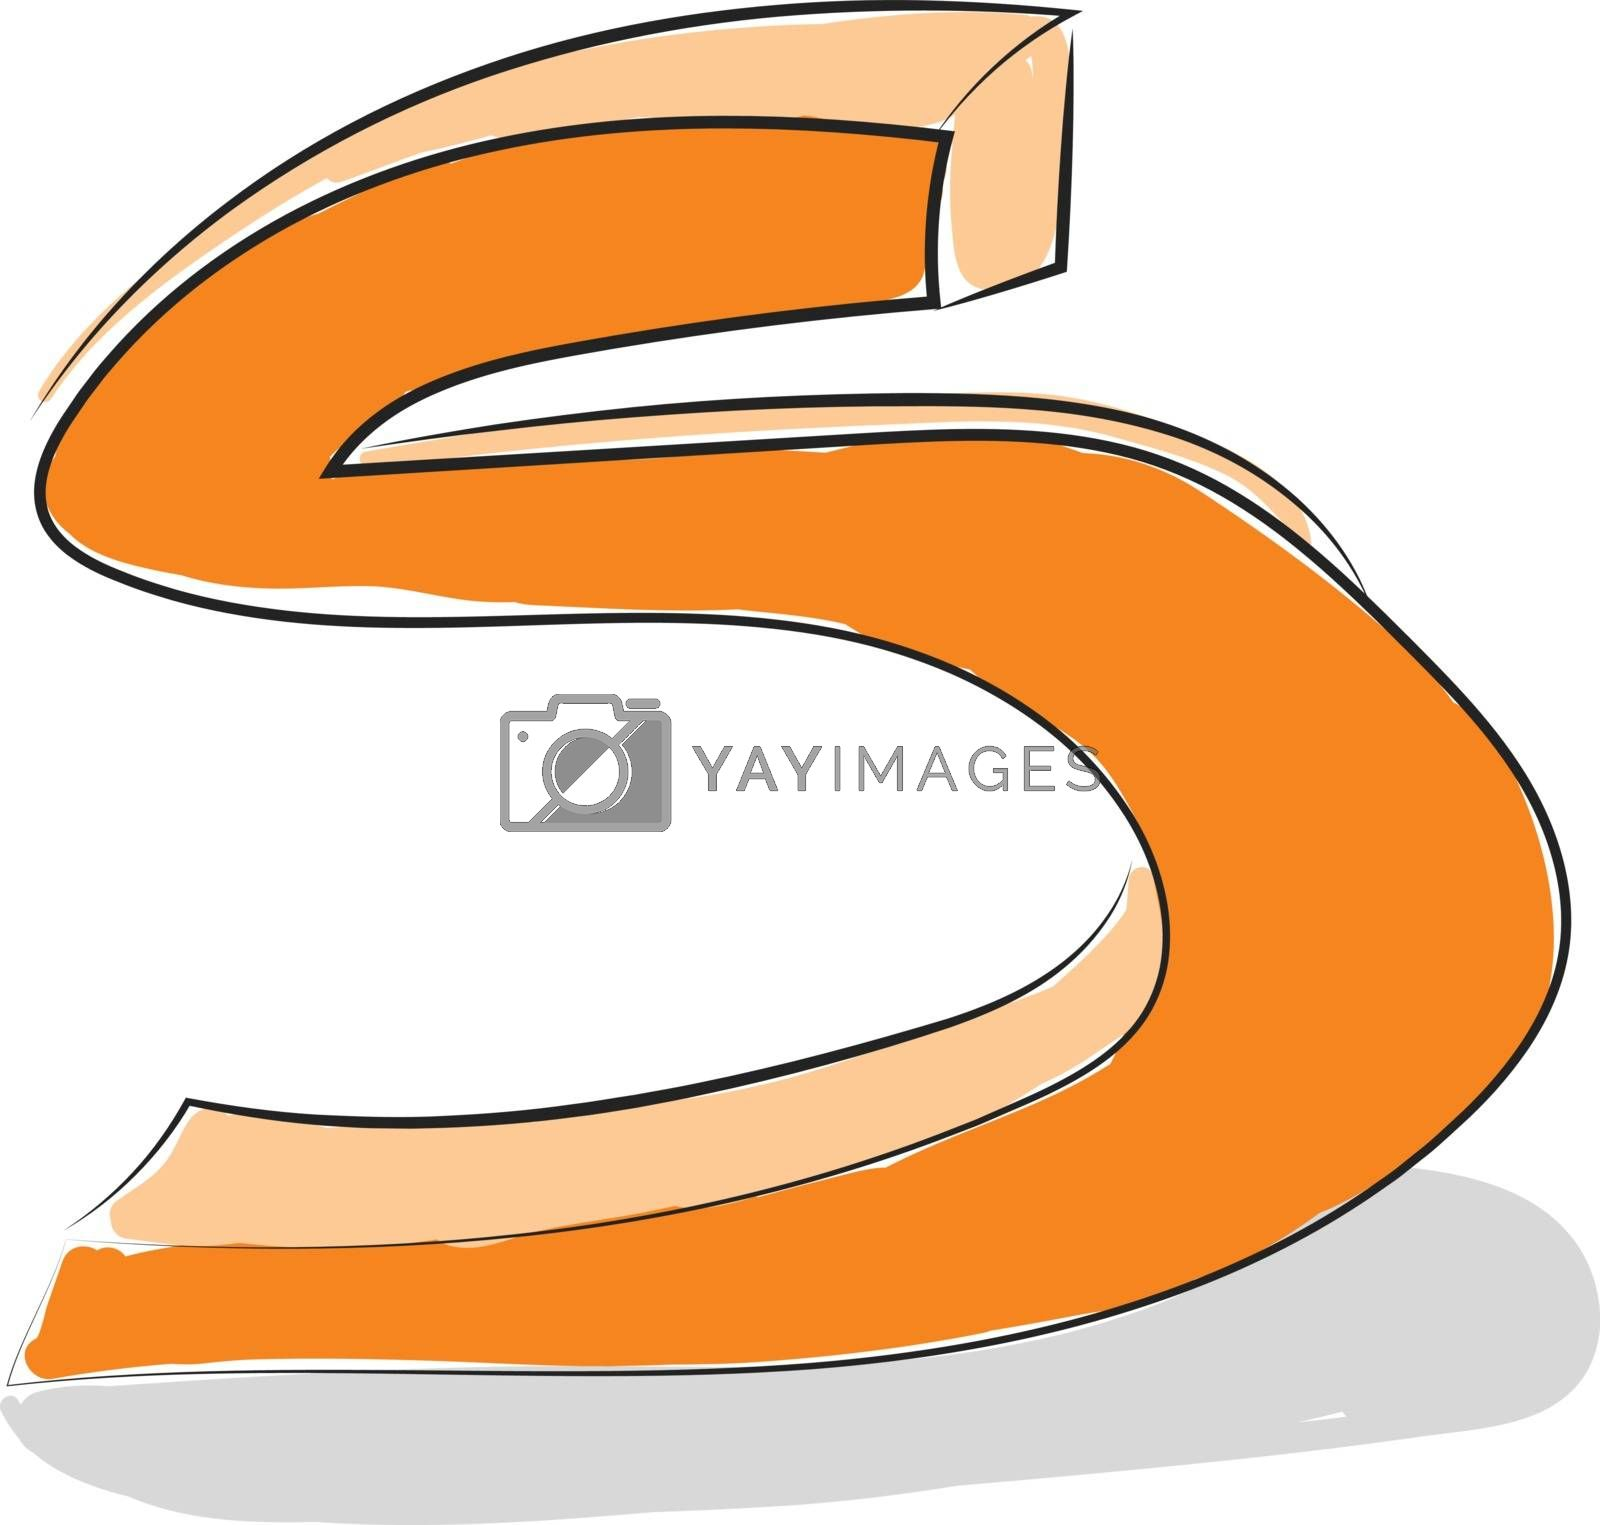 Royalty free image of Letter S alphabet vector or color illustration by Morphart